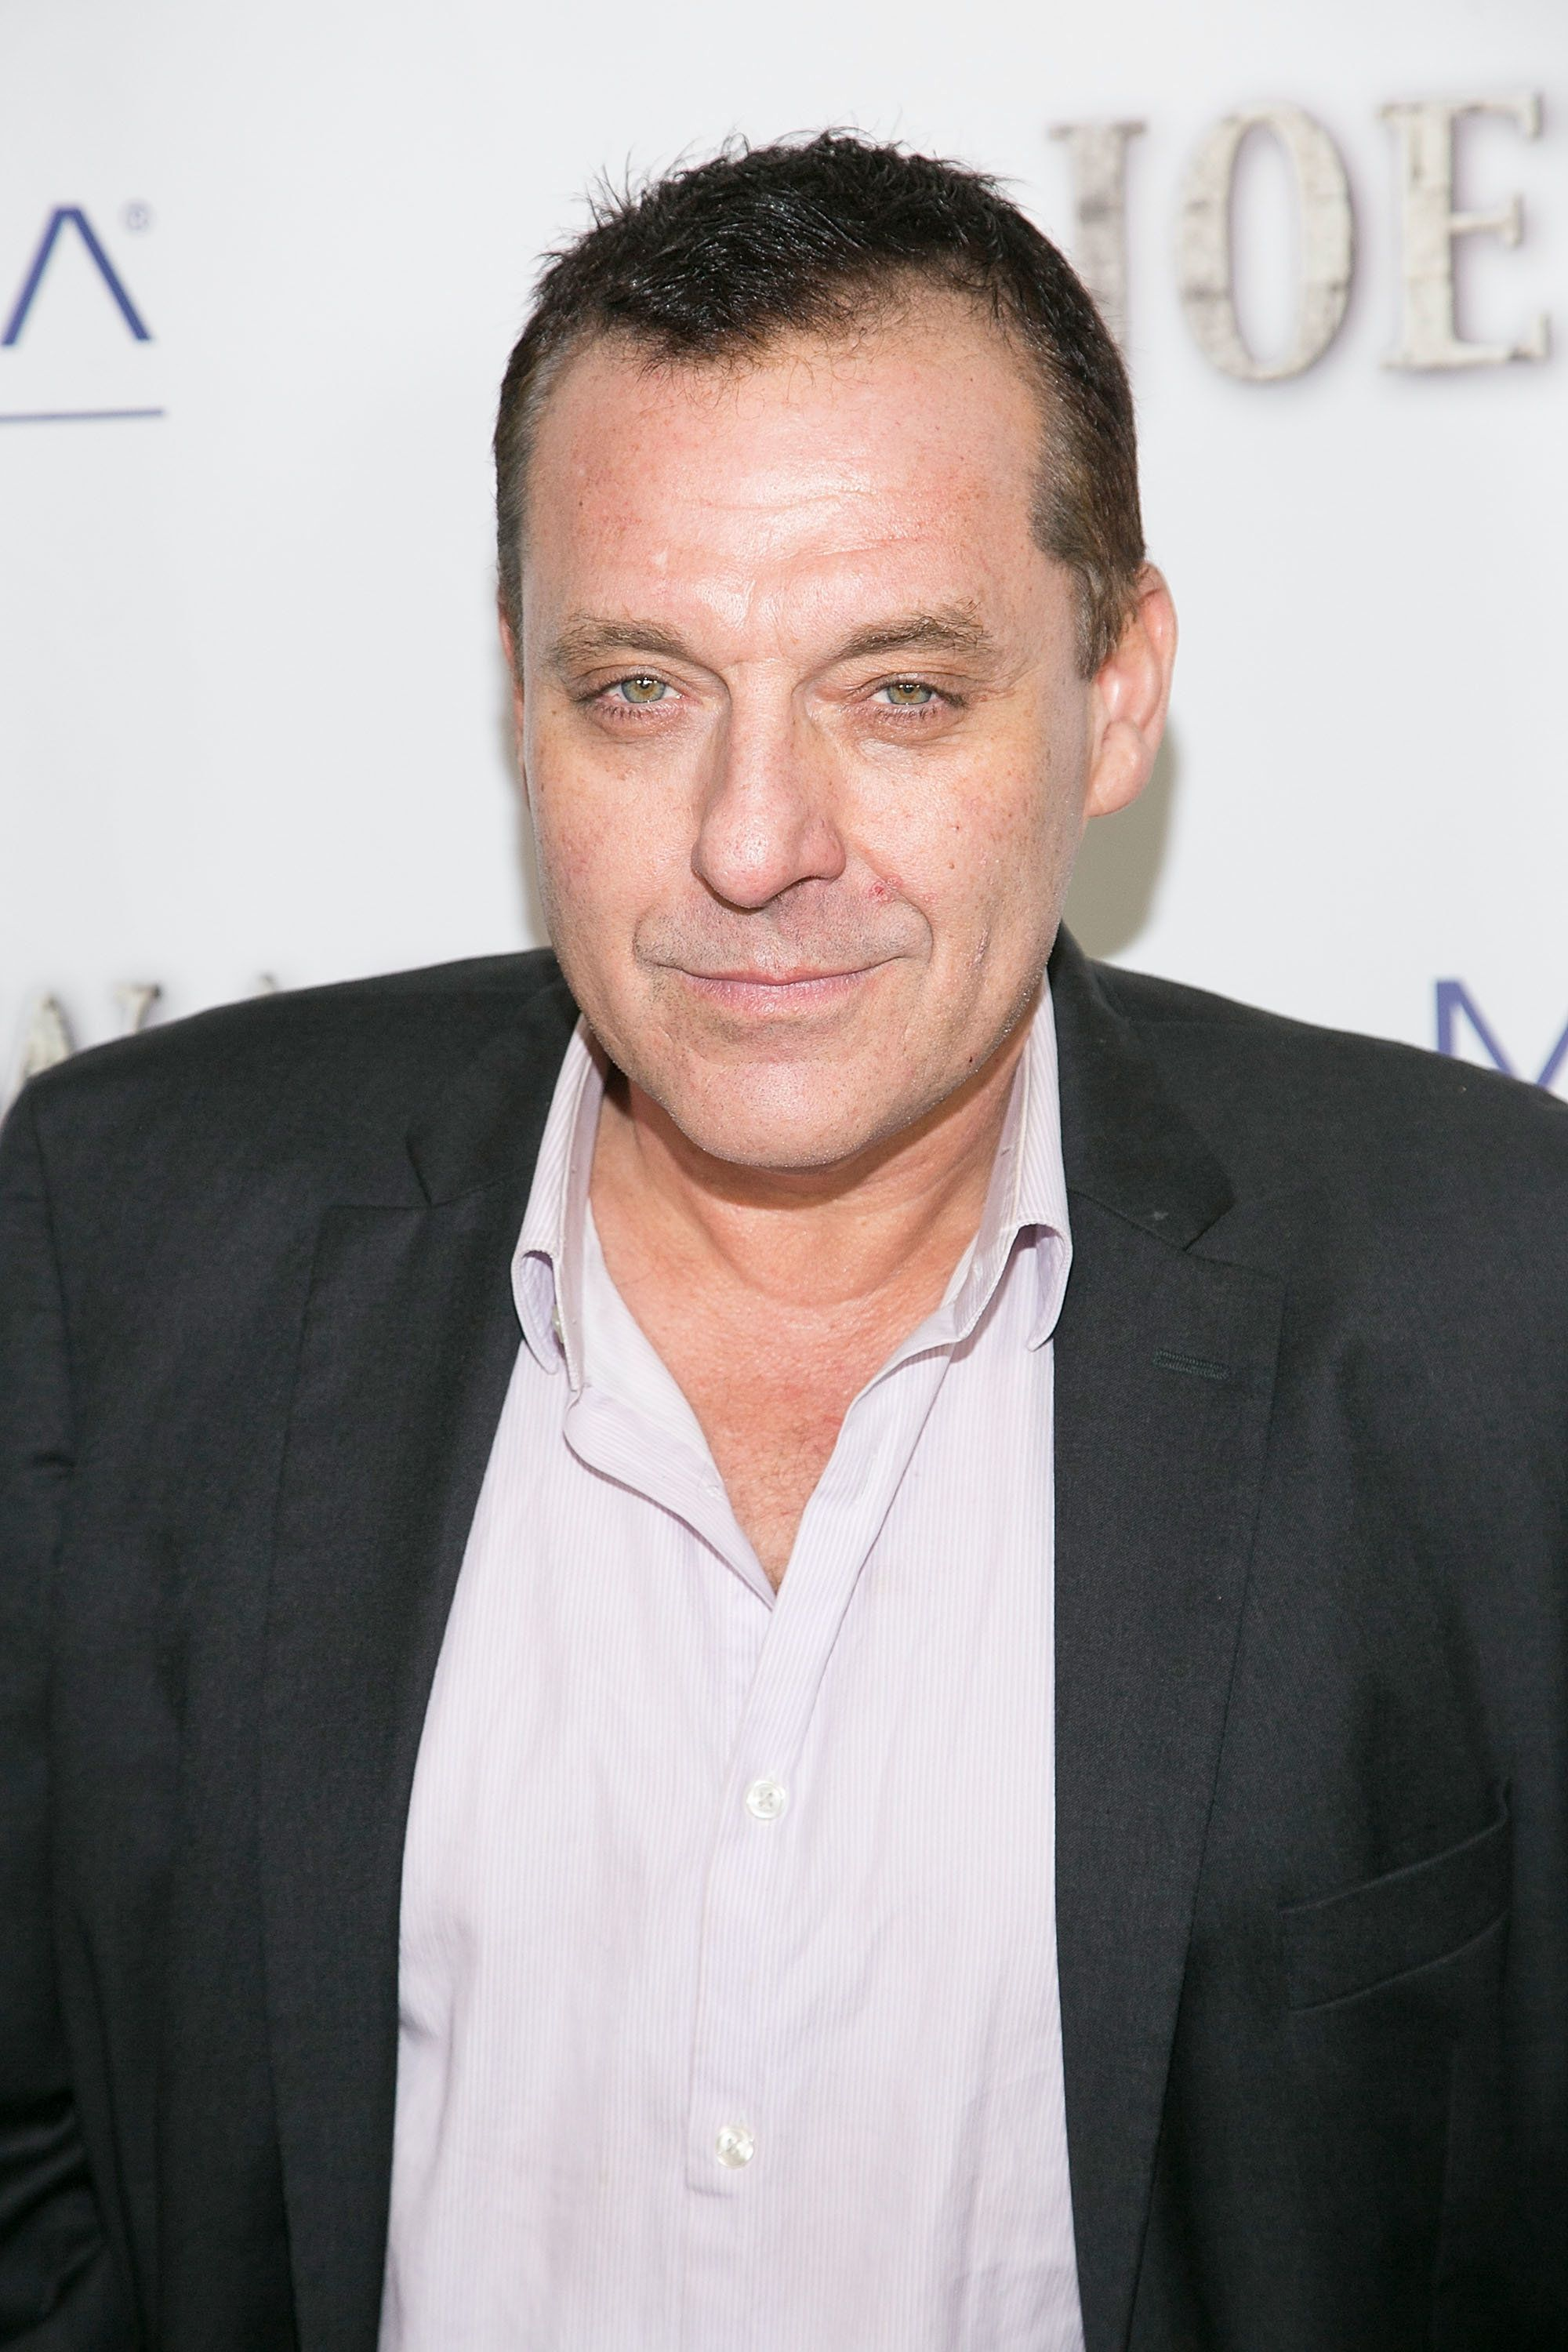 LOS ANGELES, CA - NOVEMBER 05:  Tom Sizemore arrives to the premiere of 'Joe's War' at Harmony Gold on November 5, 2015 in Los Angeles, California.  (Photo by Gabriel Olsen/Getty Images)